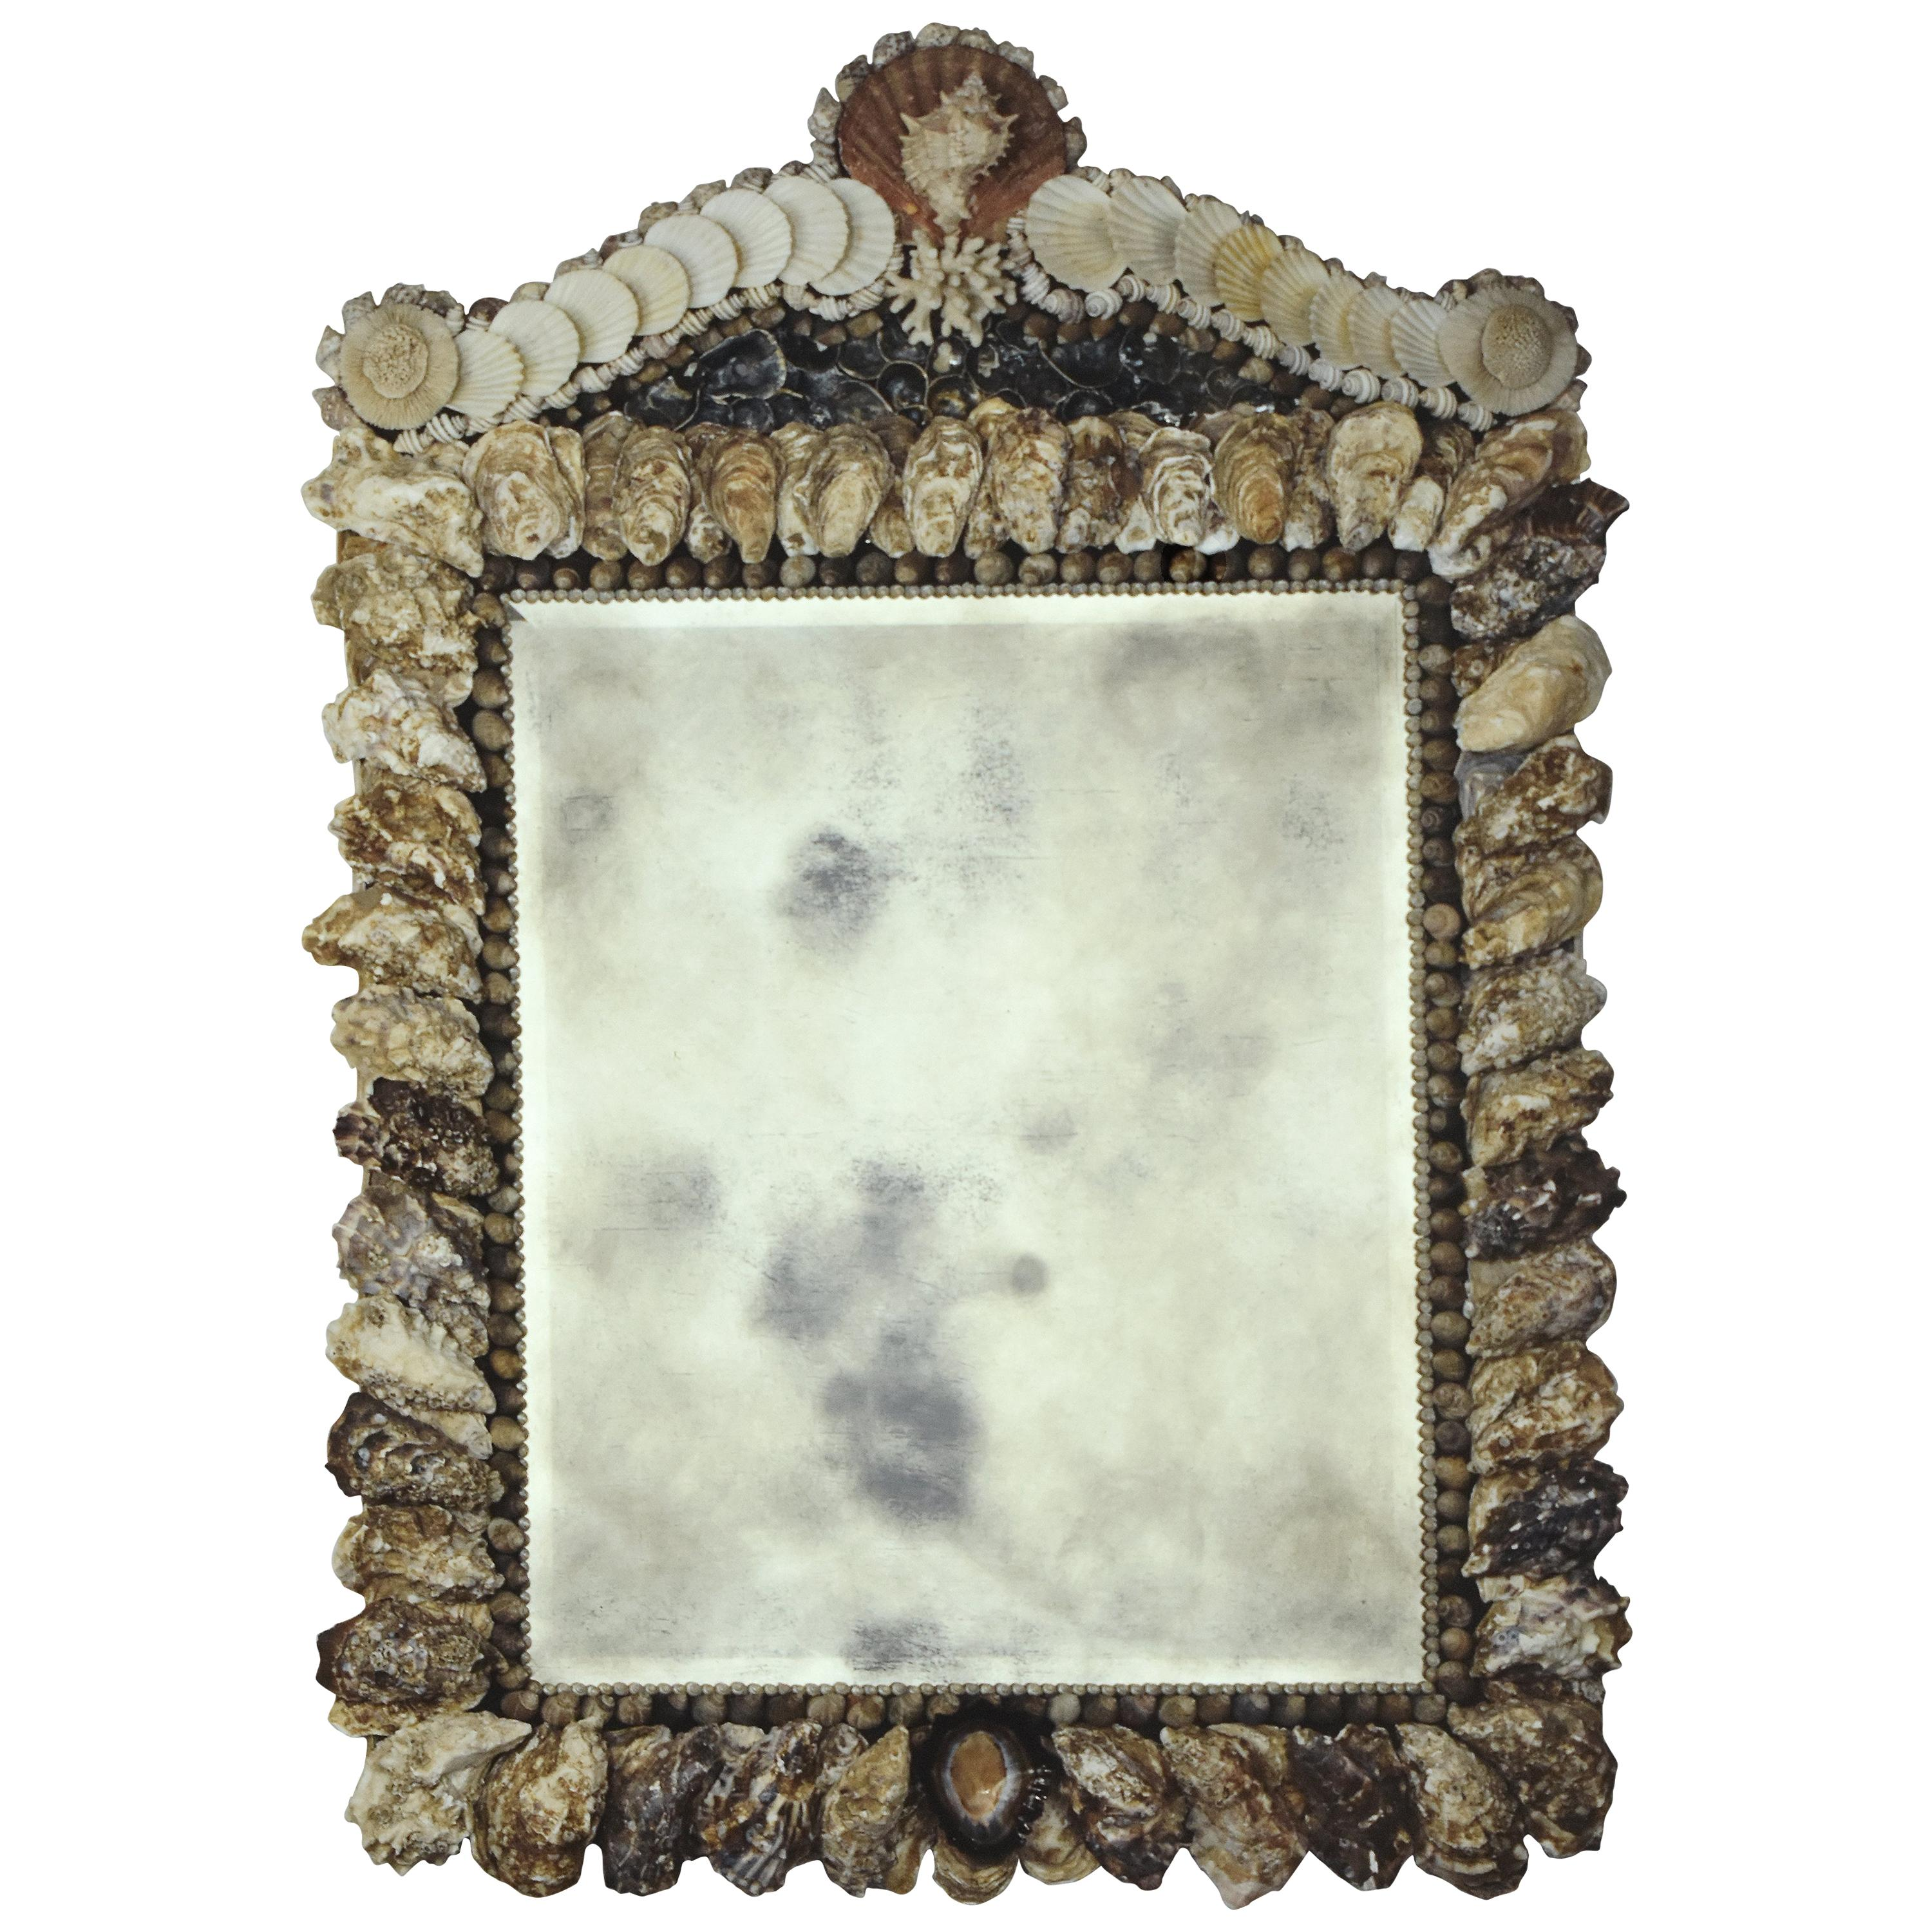 Oyster Shell Looking Glass Mirror